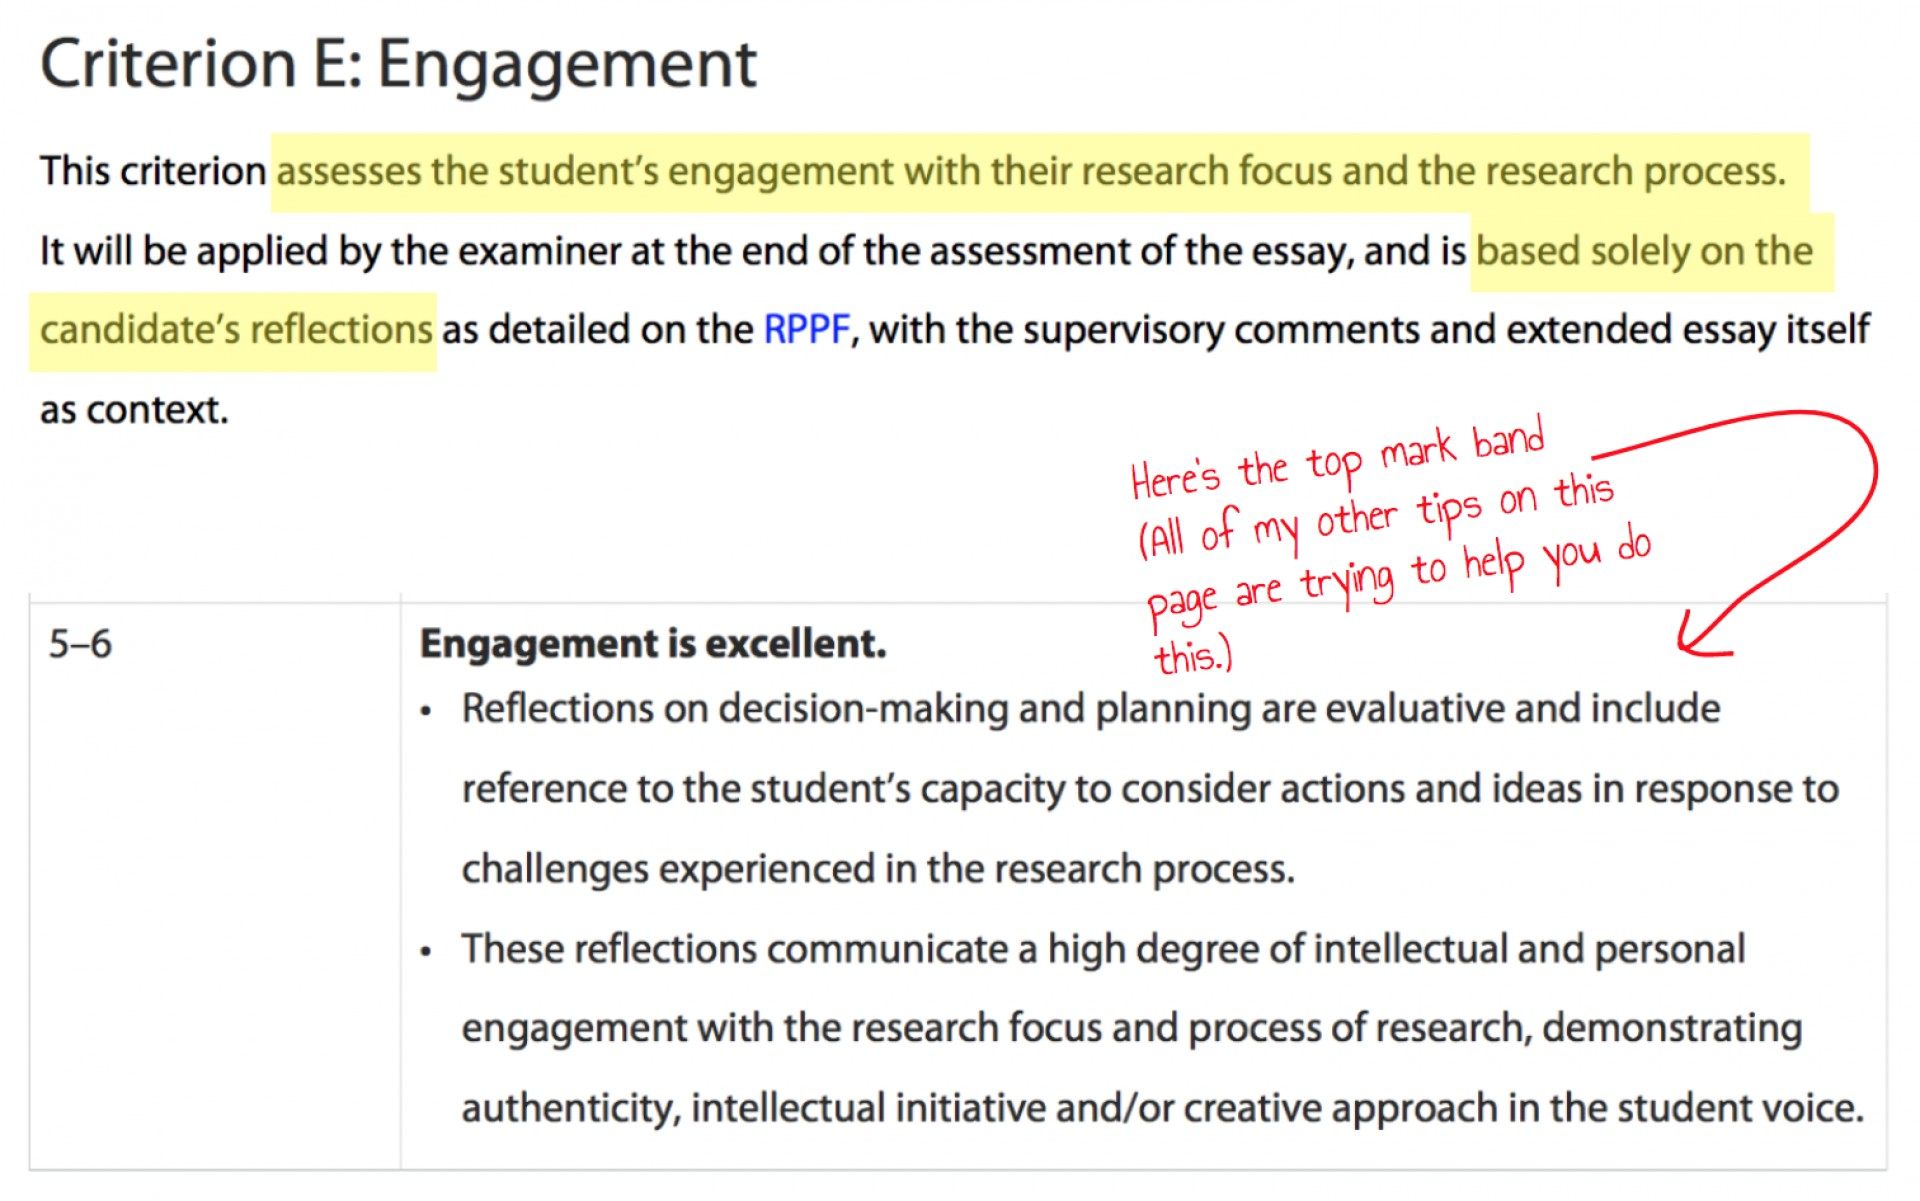 026 Tok Essay Rubric Example Lhhkxge9q7mirooowugt Screen Shot 2018 05 At 5 15 Pm Stupendous Extended 2019 2016 1920